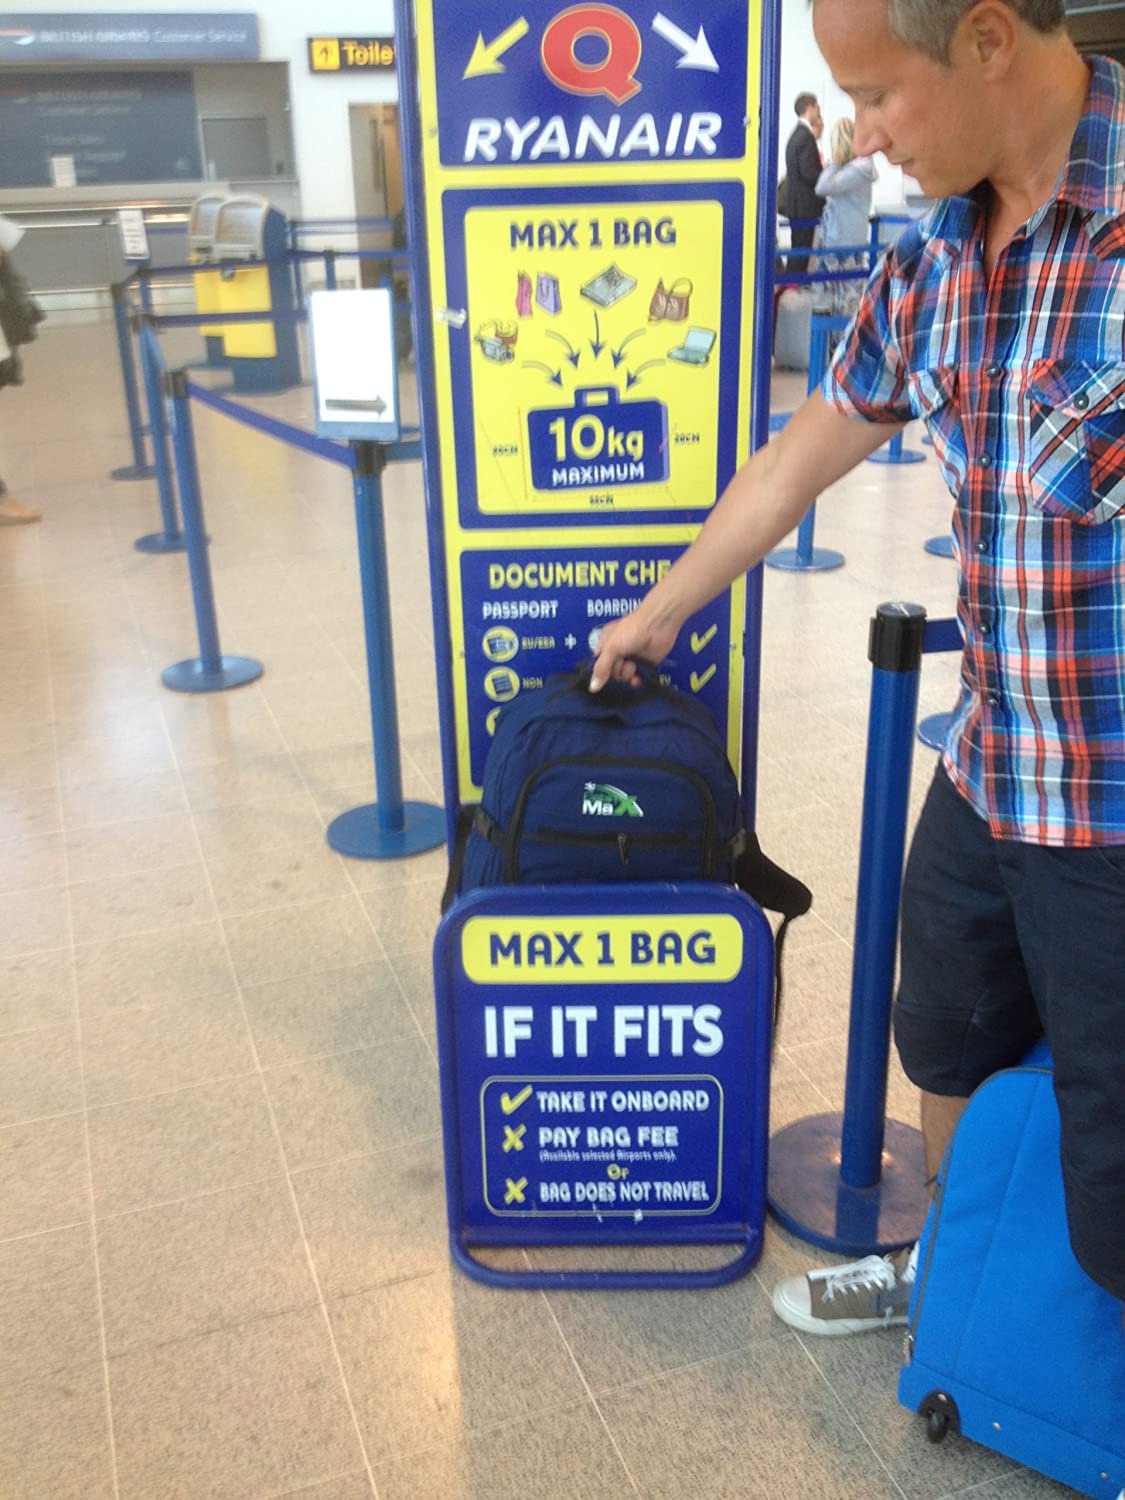 Ryanair Cabin Baggage Limits and Allowance - Cabin baggage ...